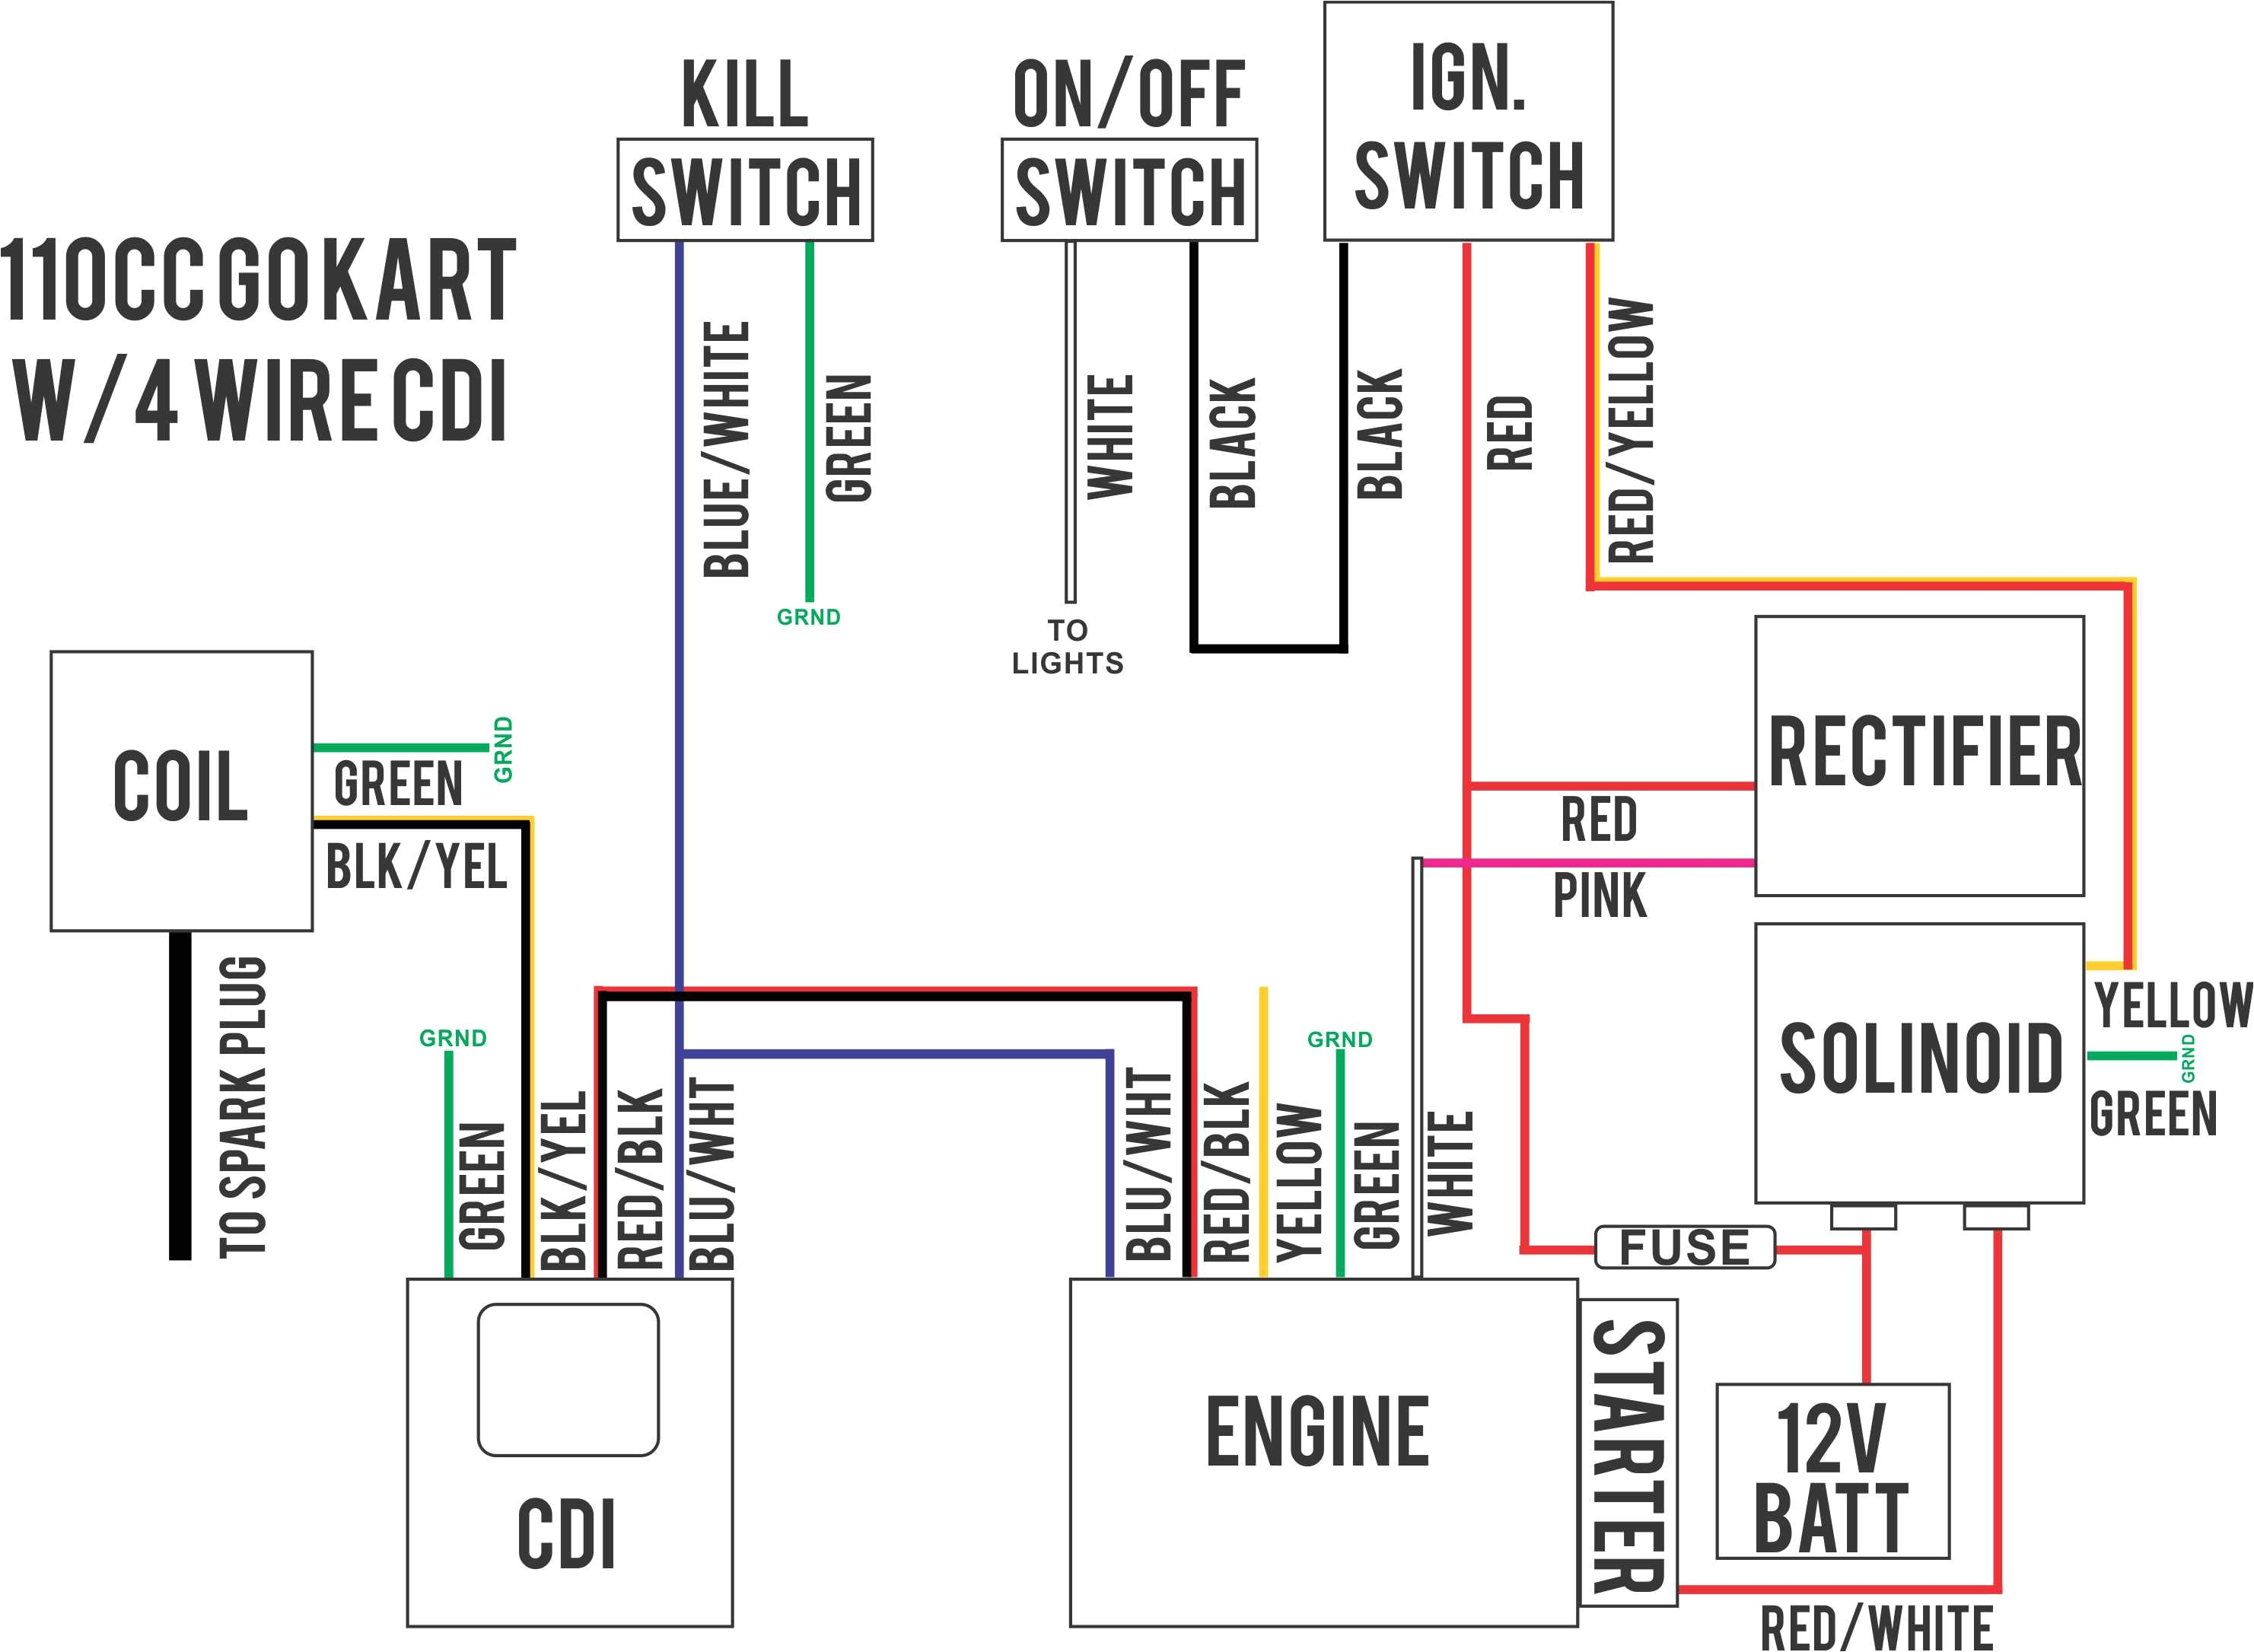 two stroke petrol engine diagram stroke scooter wiring diagram get free image about wiring diagram of two stroke petrol engine diagram jpg